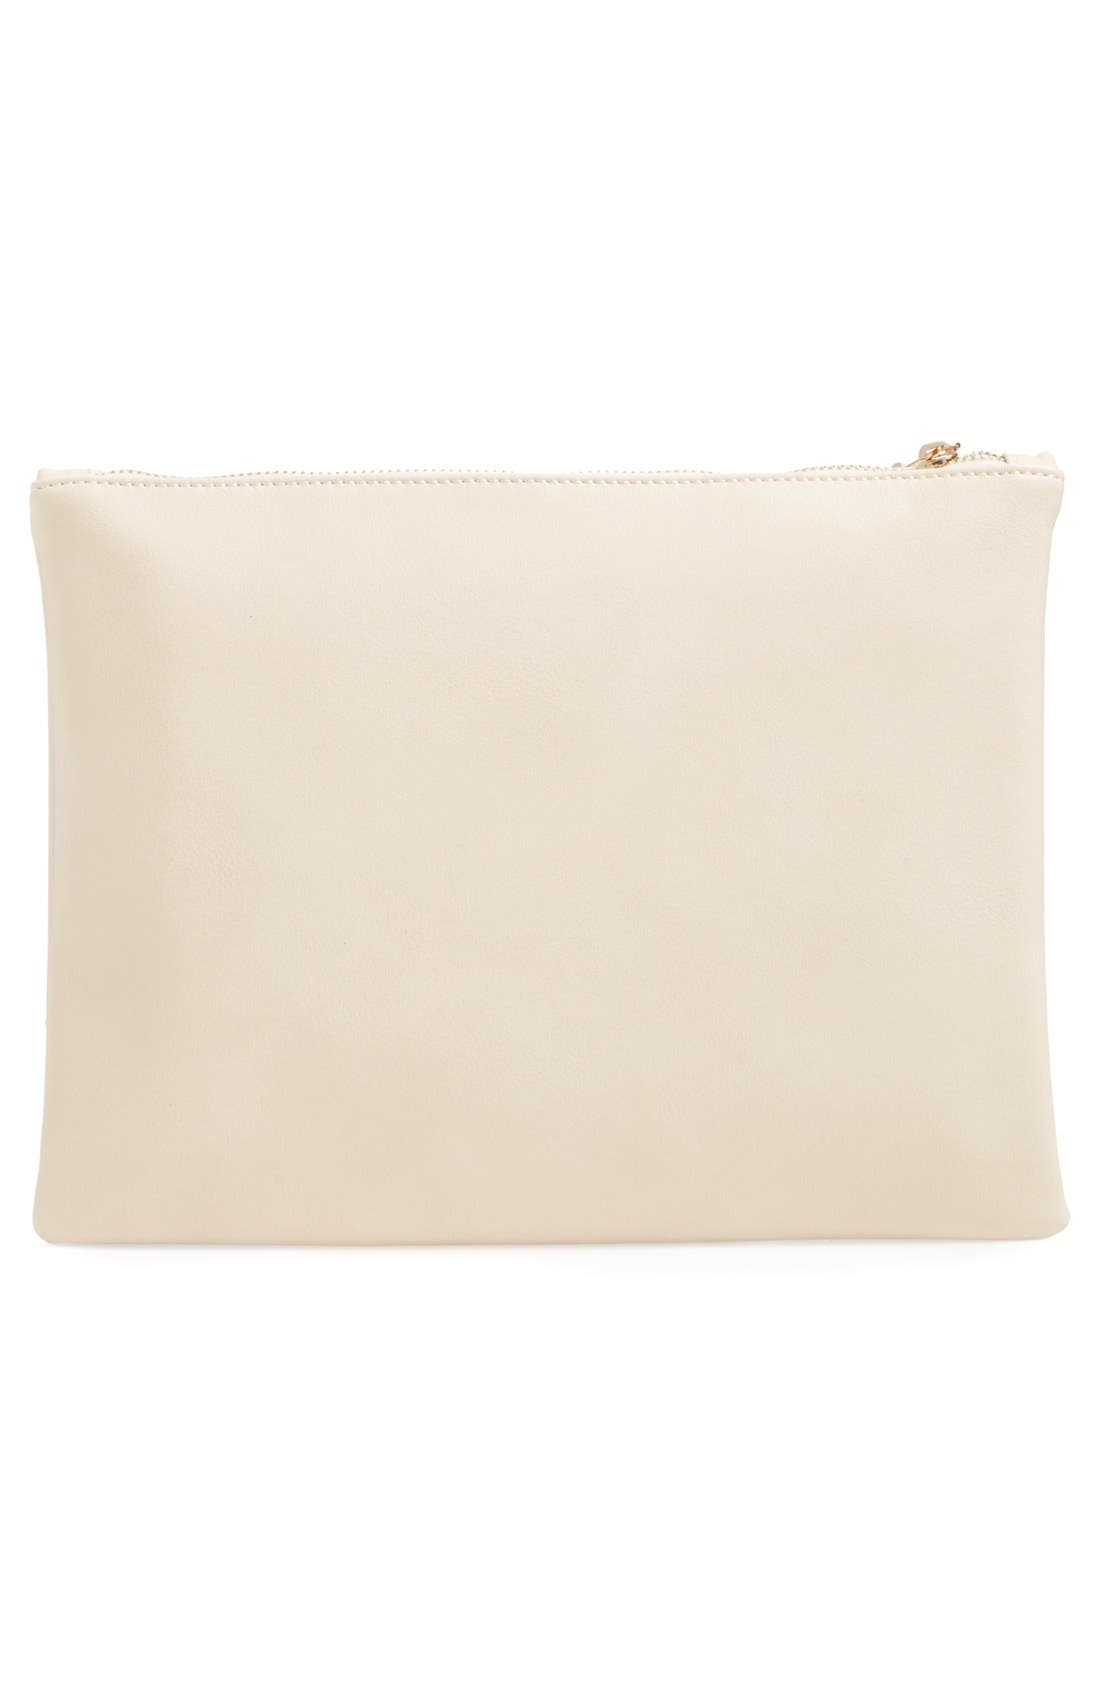 Alternate Image 3  - Sole Society 'Radcliffe' Faux Leather Clutch